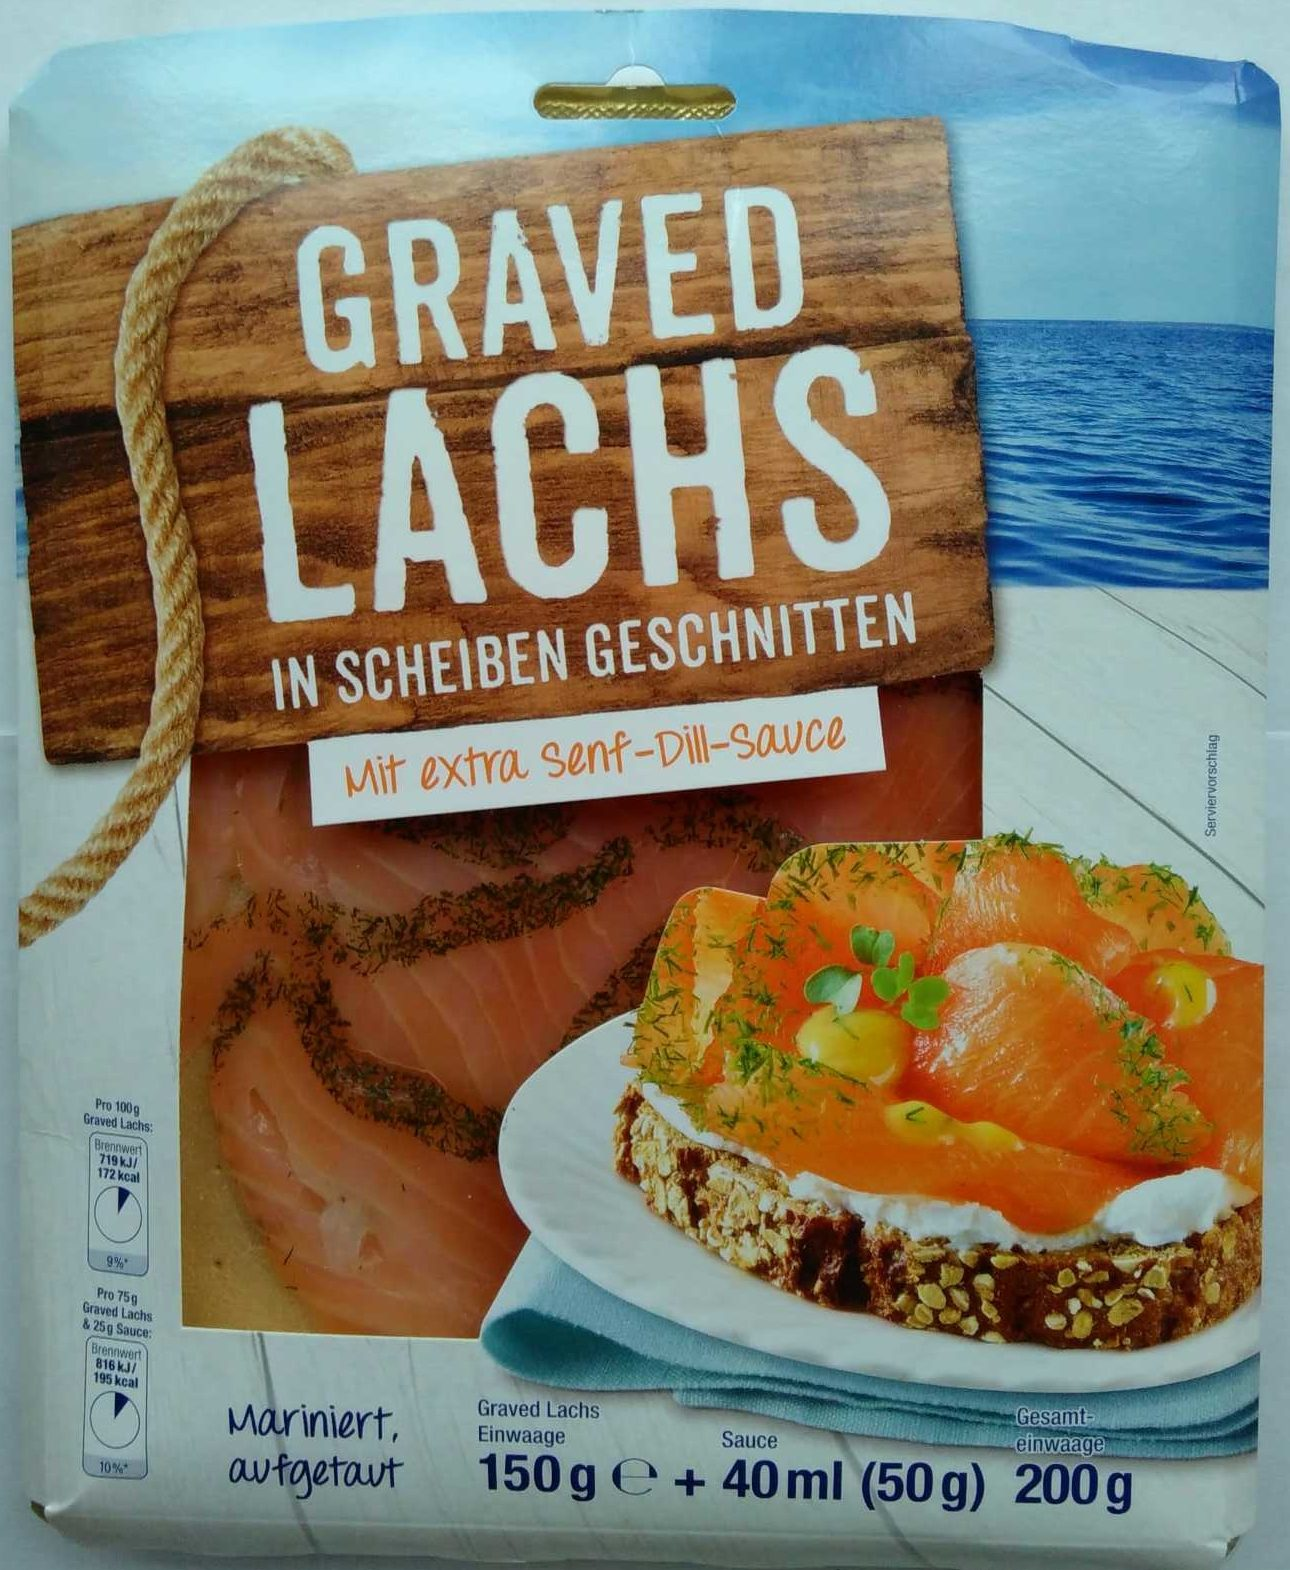 graved lachs norfisk 150 g 40 ml 50 g sauce. Black Bedroom Furniture Sets. Home Design Ideas